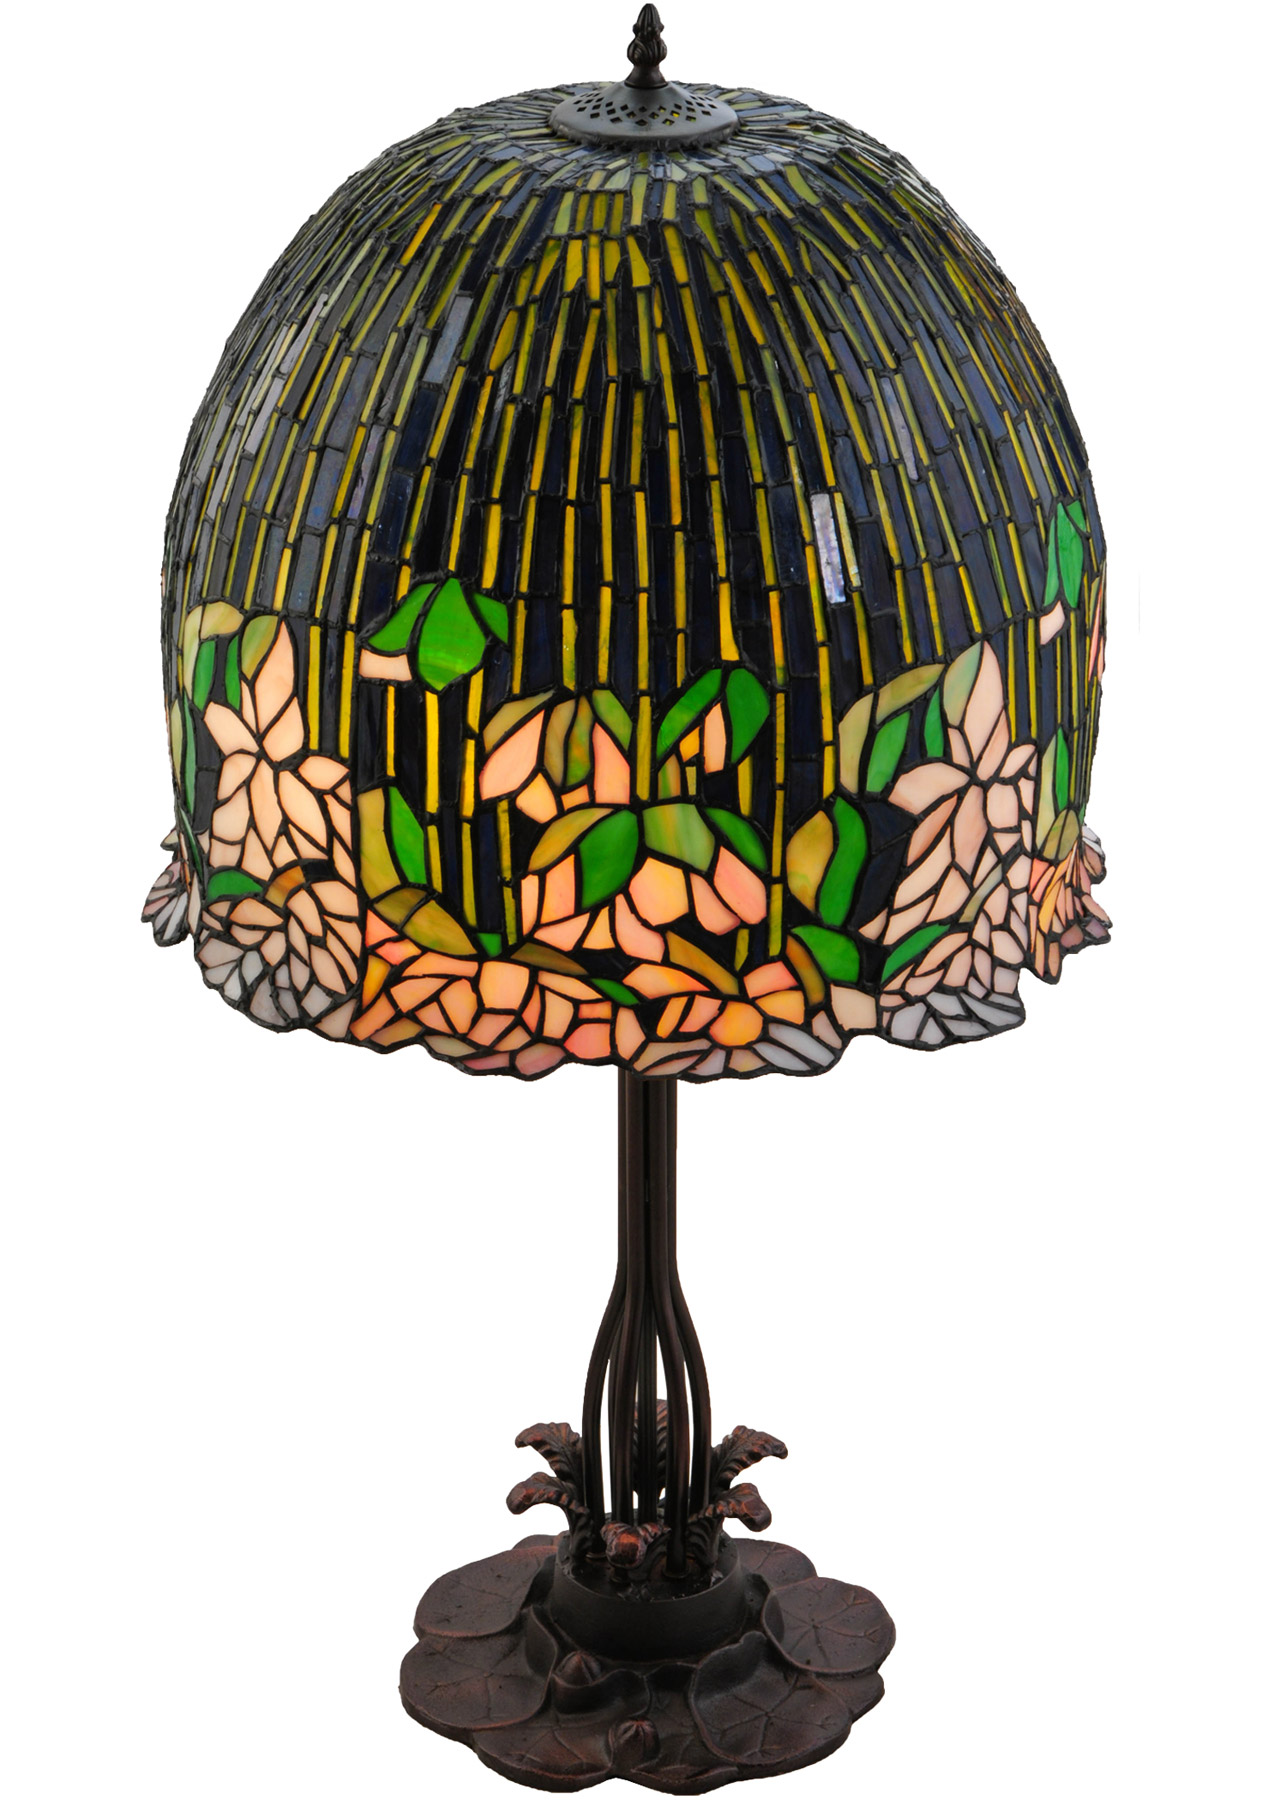 Meyda 138581 Vizcaya Table Lamp